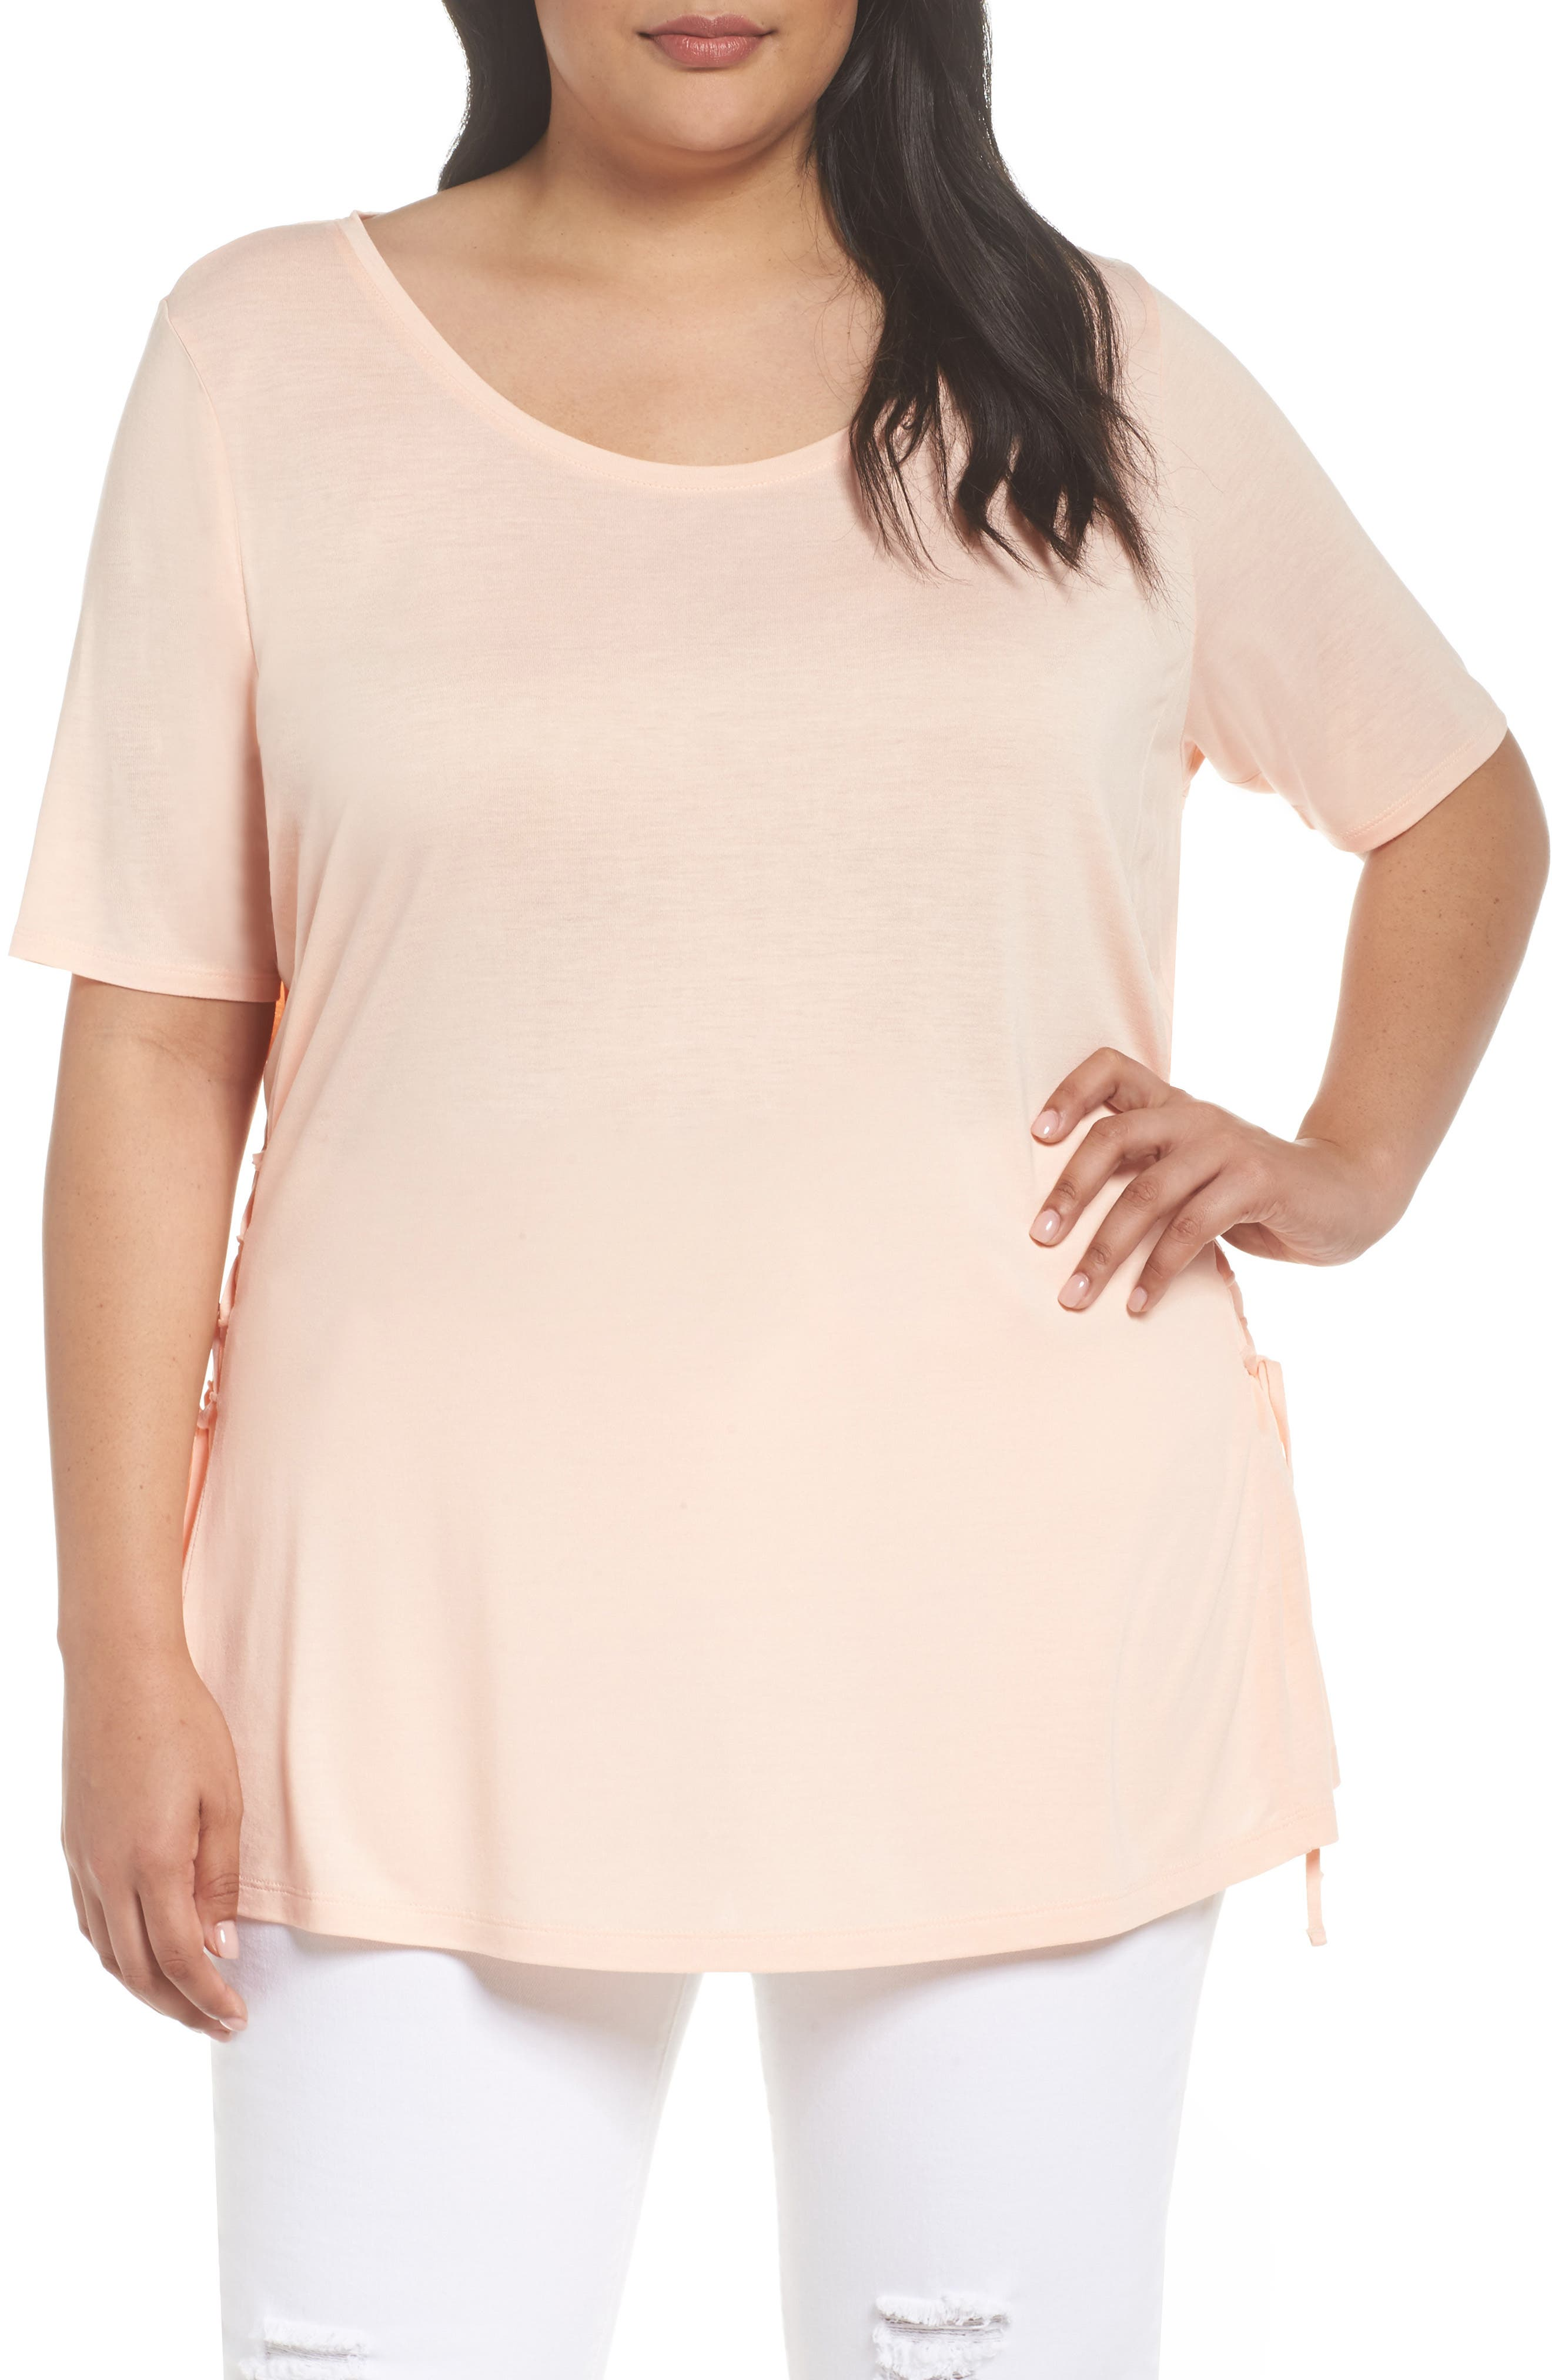 Alternate Image 1 Selected - Sejour Side Lace Up Top (Plus Size)